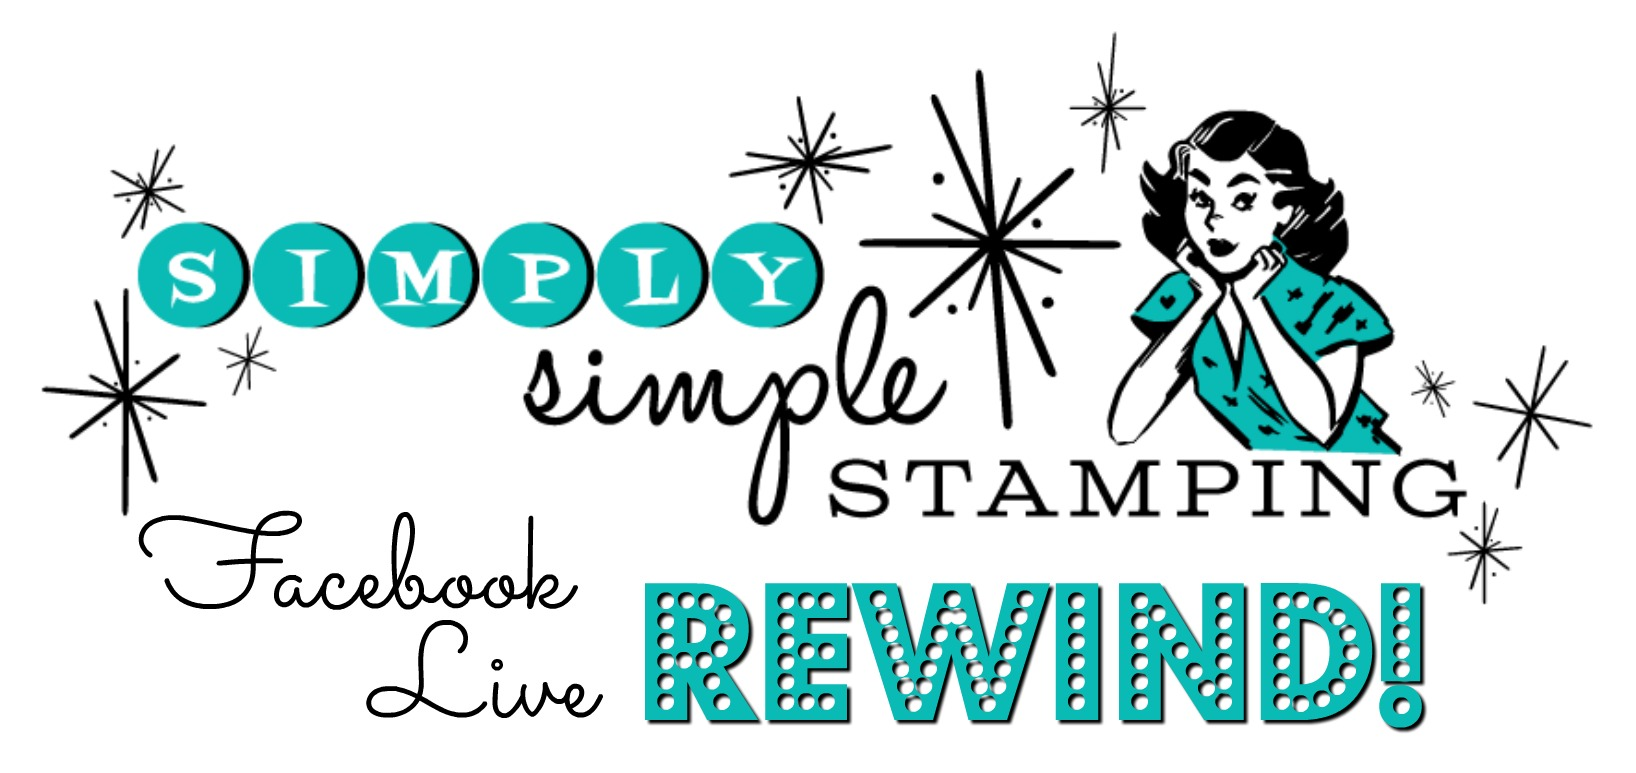 Watch the REWIND video of this week's Facebook LIVE! www.SimplySimpleStamping.com